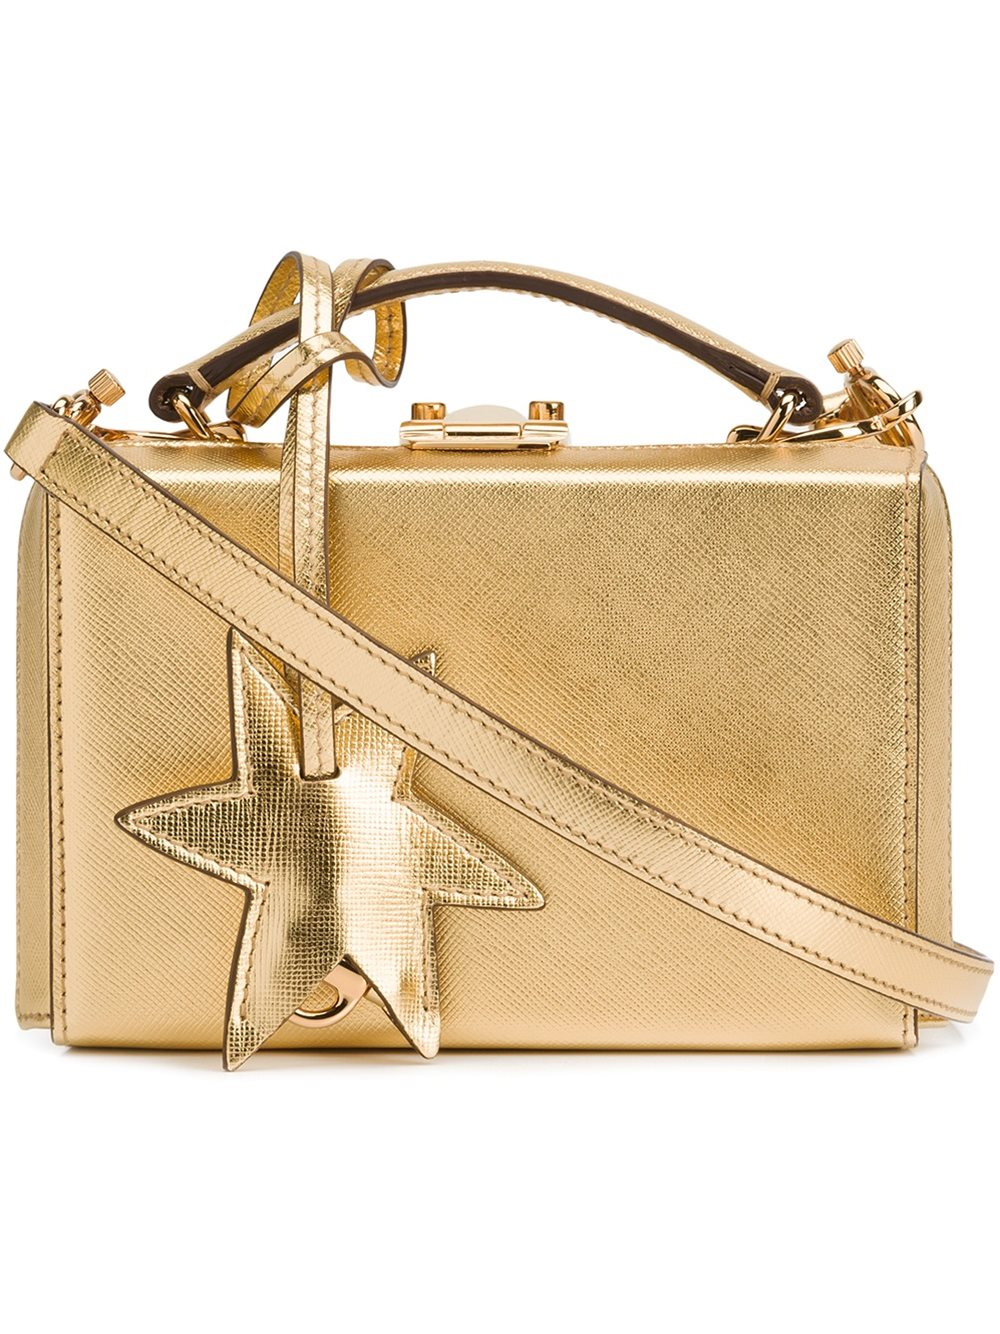 MARK CROSS bag $2,095